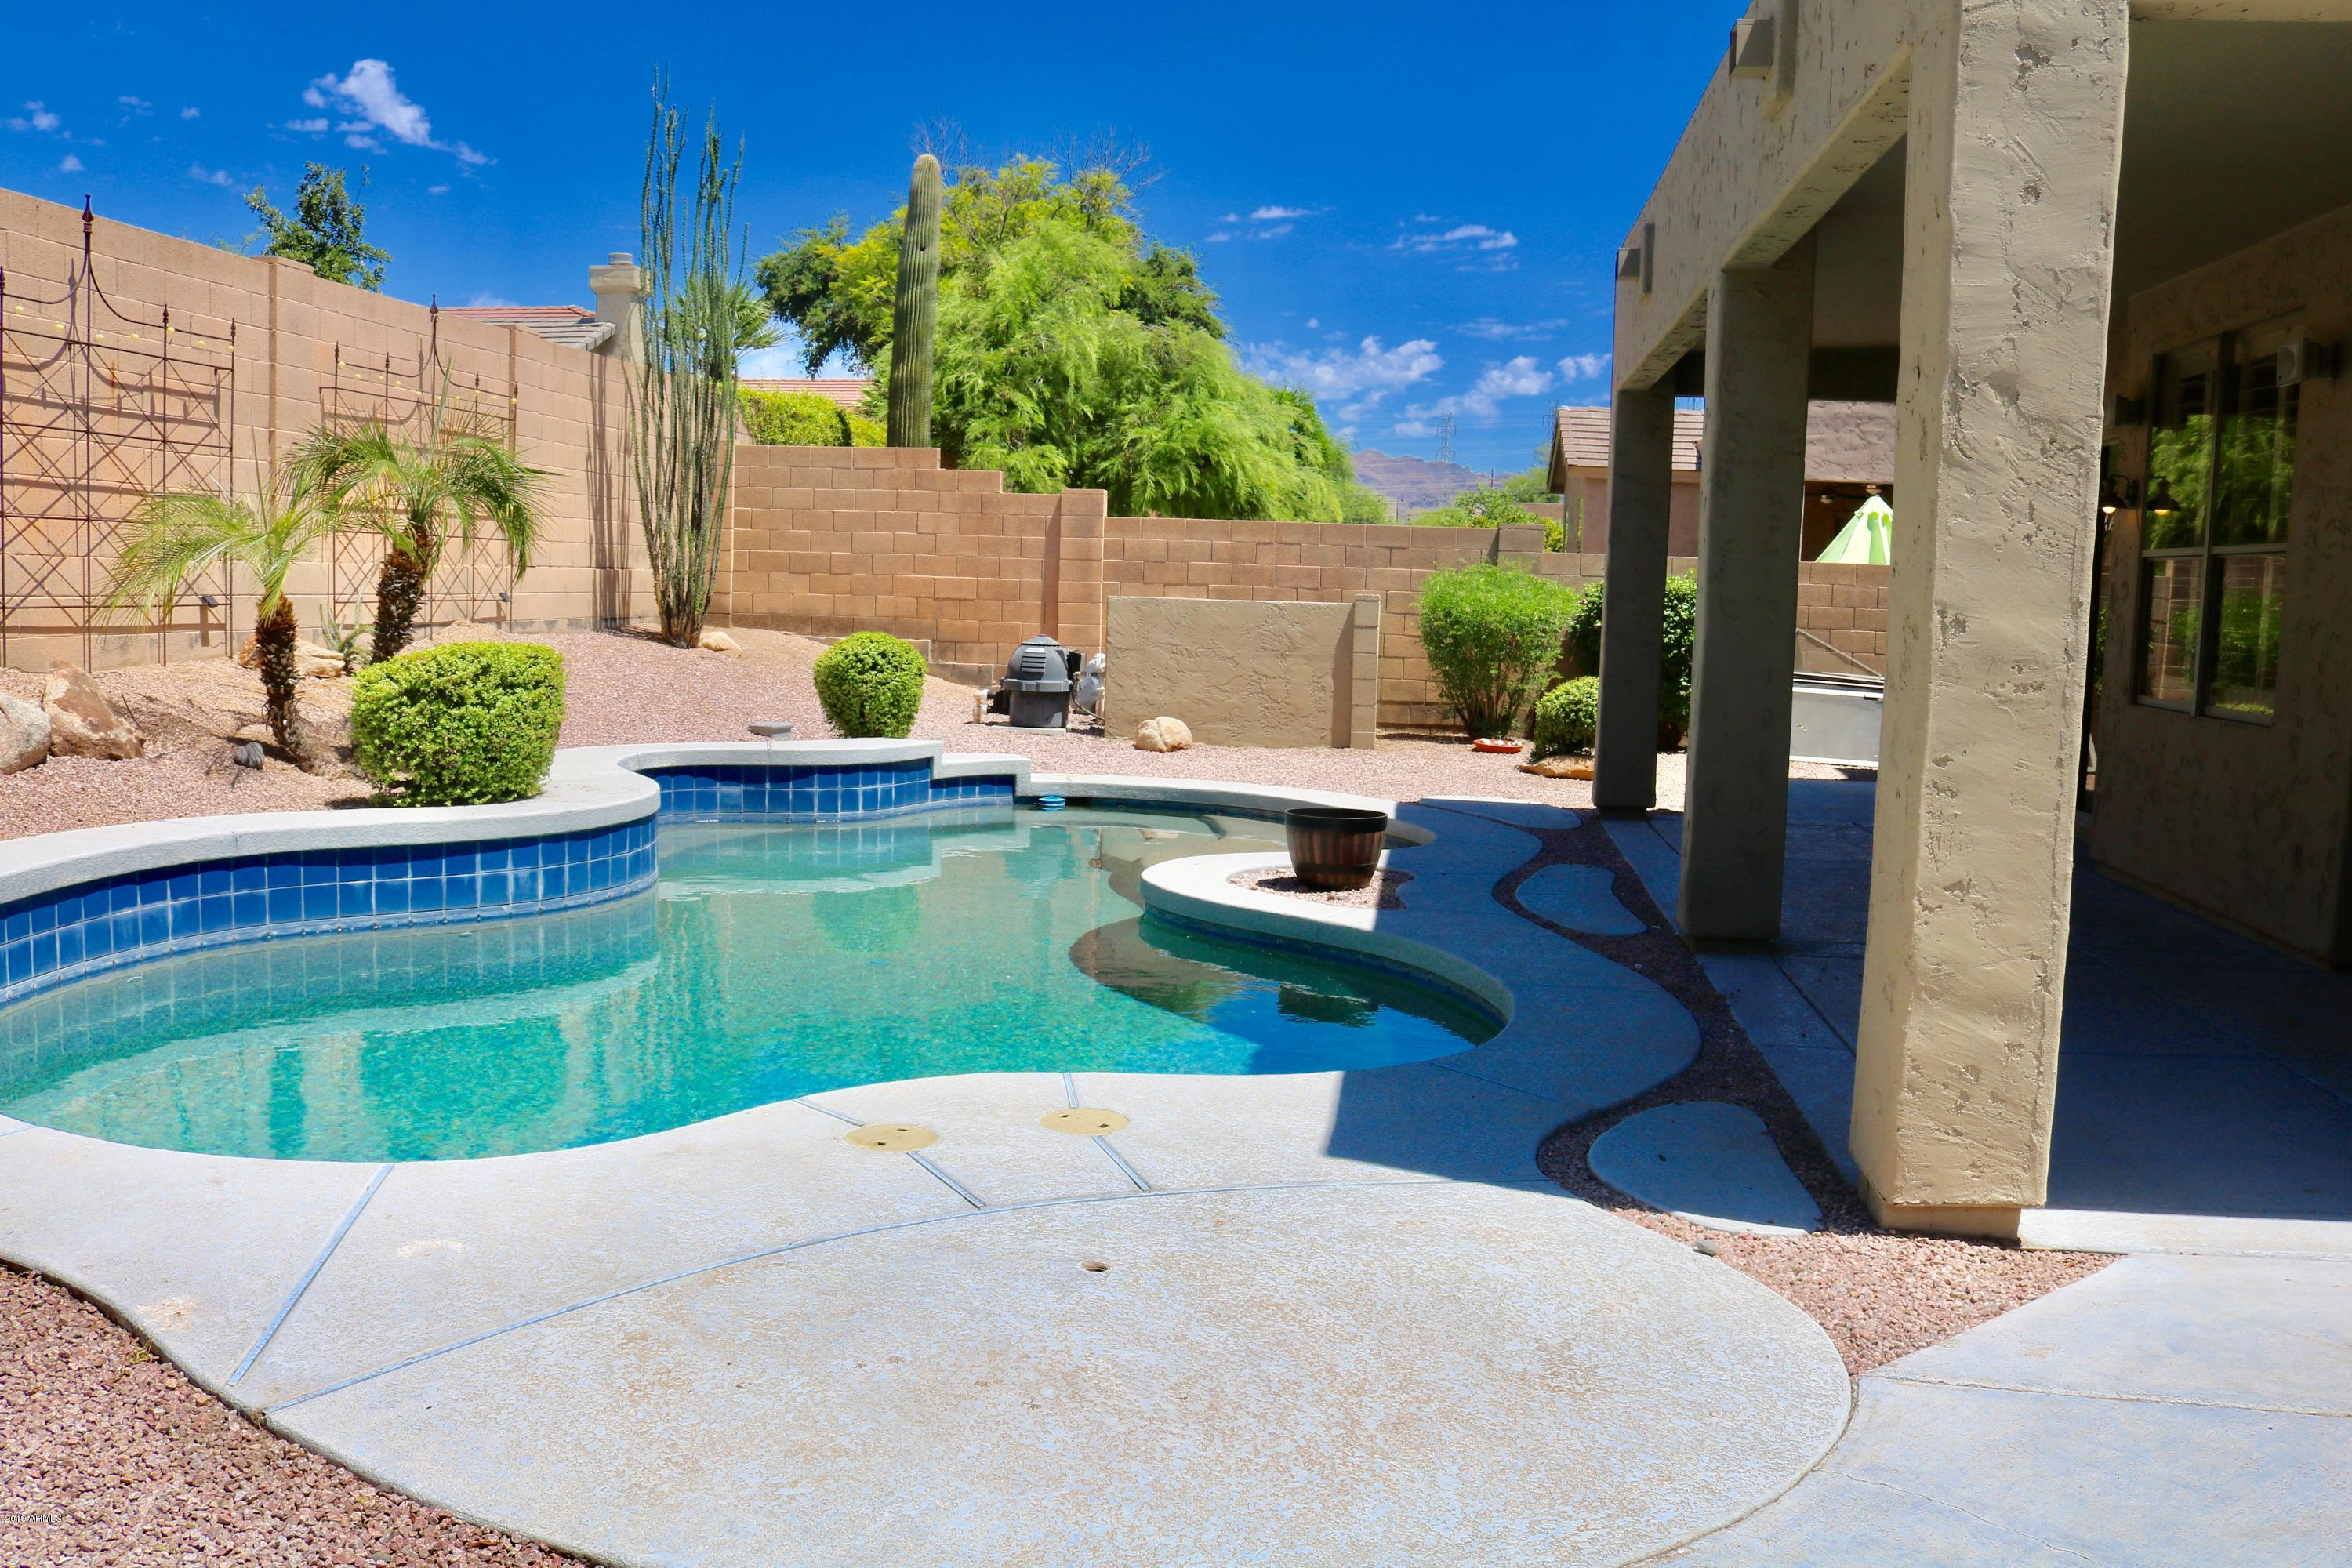 MLS 5968490 7340 E FLEDGLING Drive, Scottsdale, AZ 85255 Scottsdale AZ Private Pool